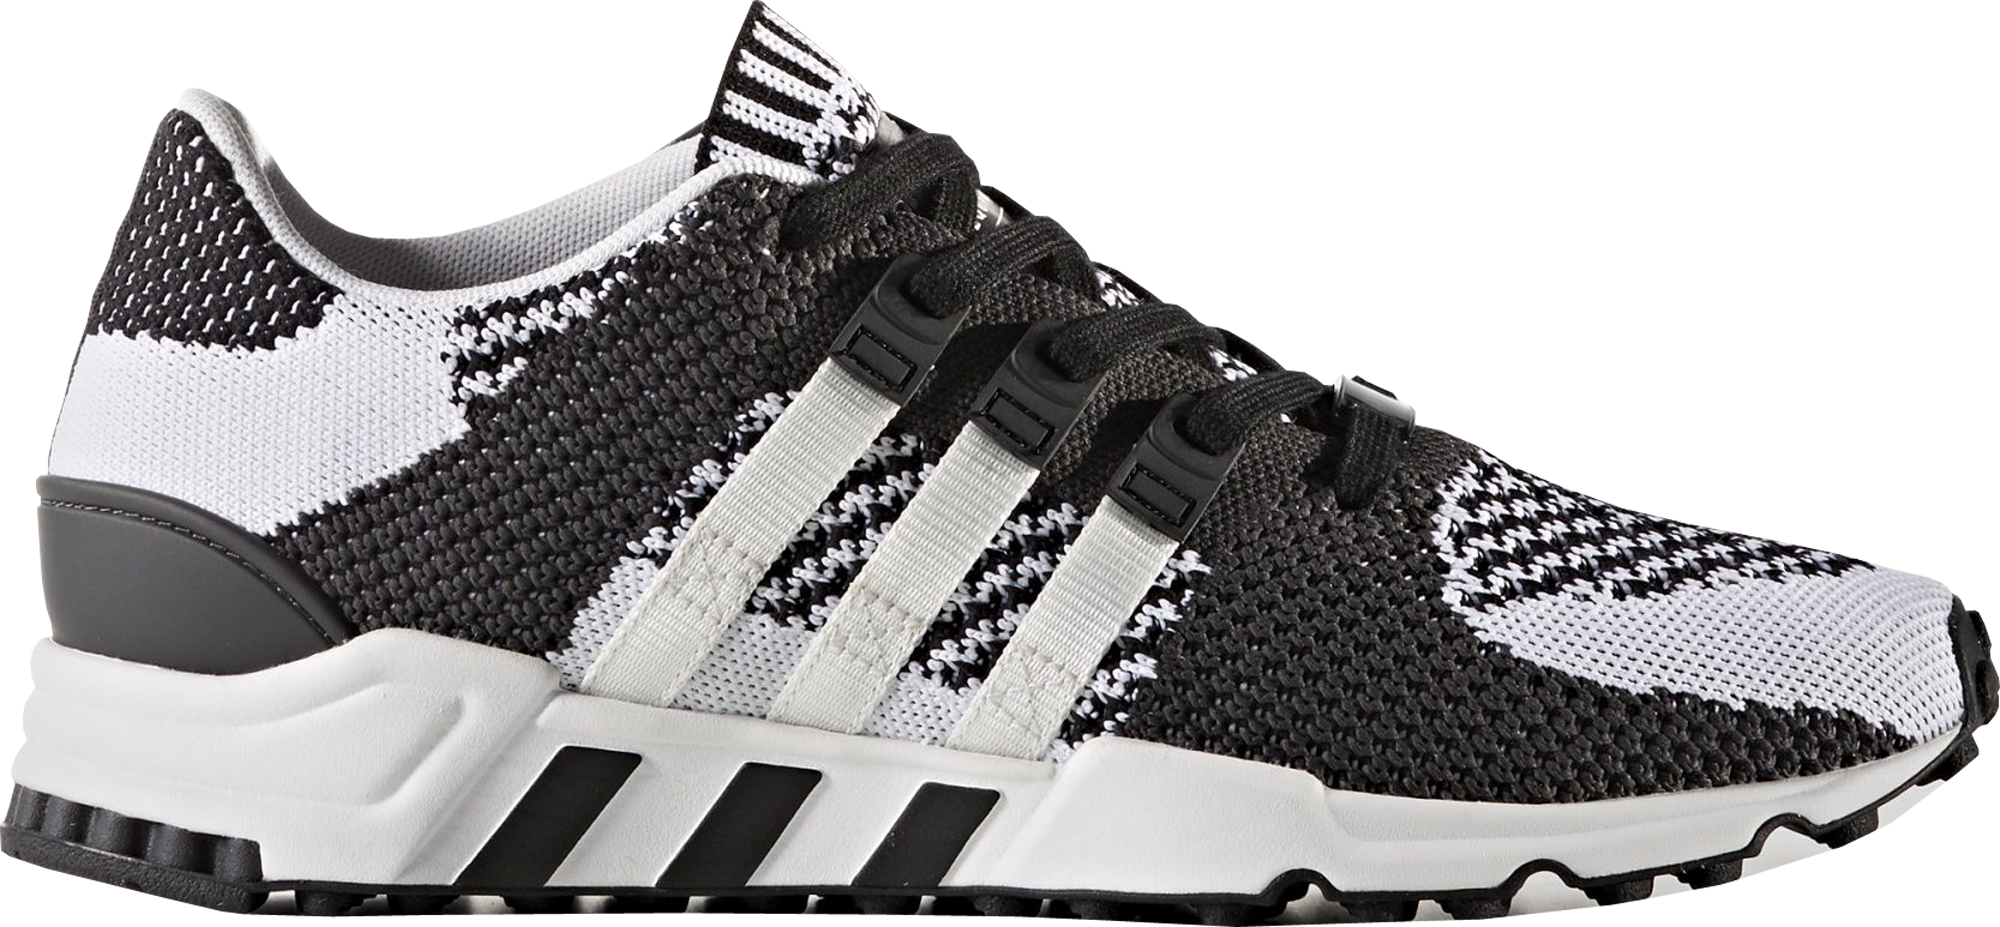 Rf Primeknit News Black Eqt Support Stockx Adidas White tsCxhordBQ